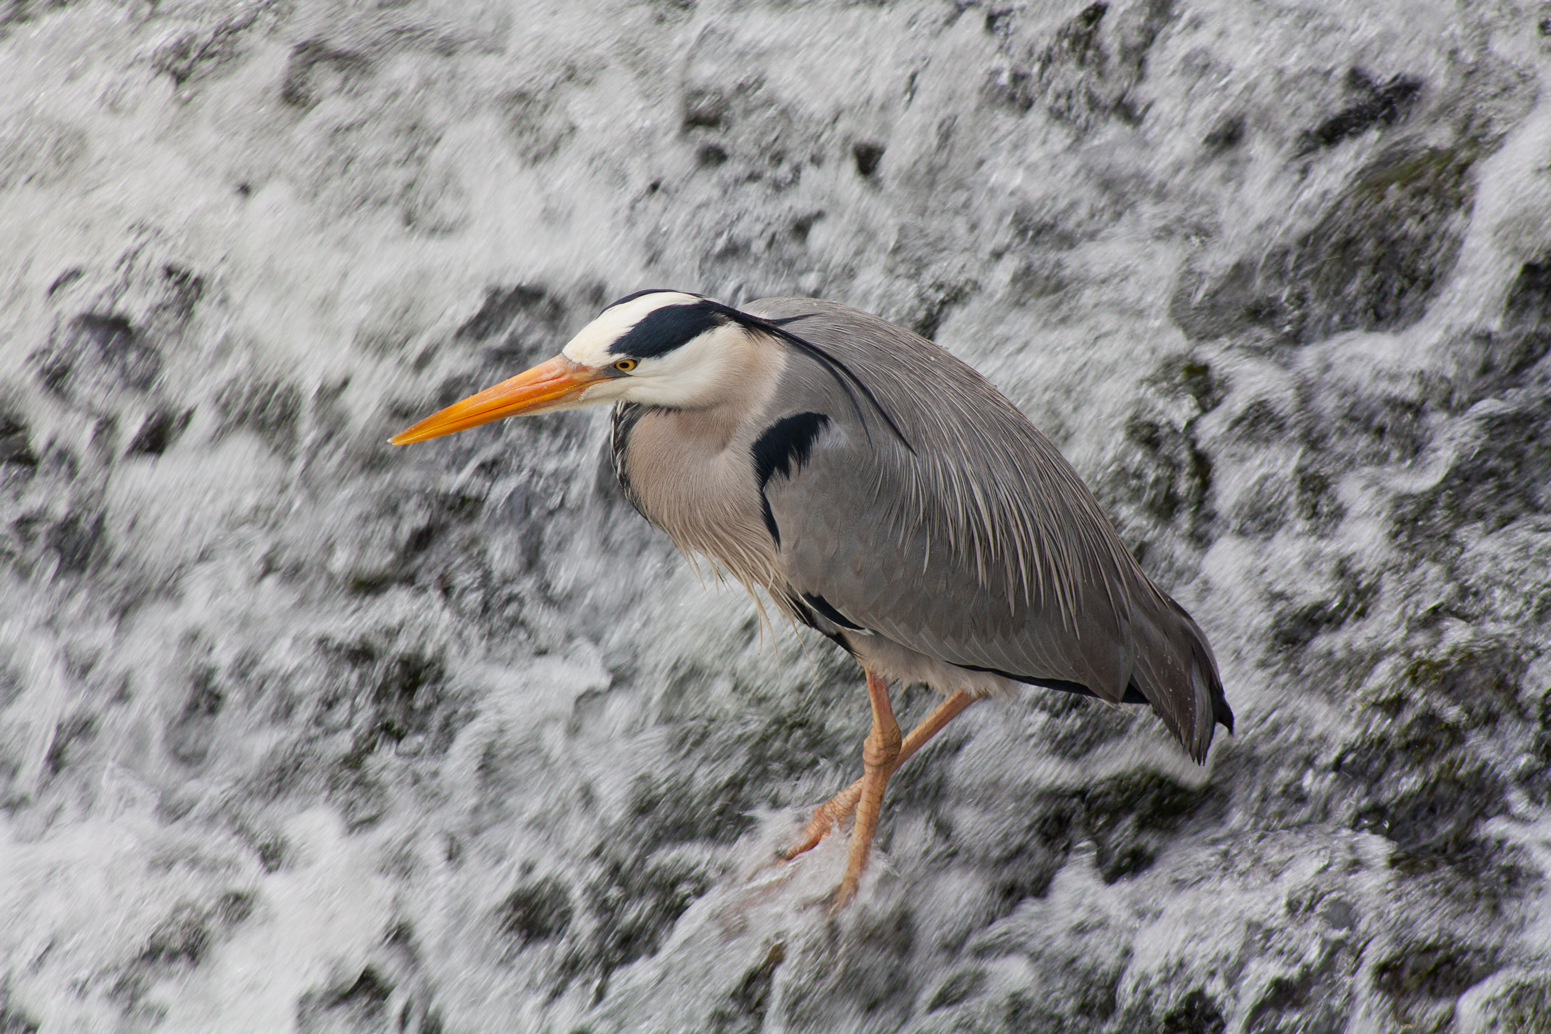 Heron standing on weir in Cahir